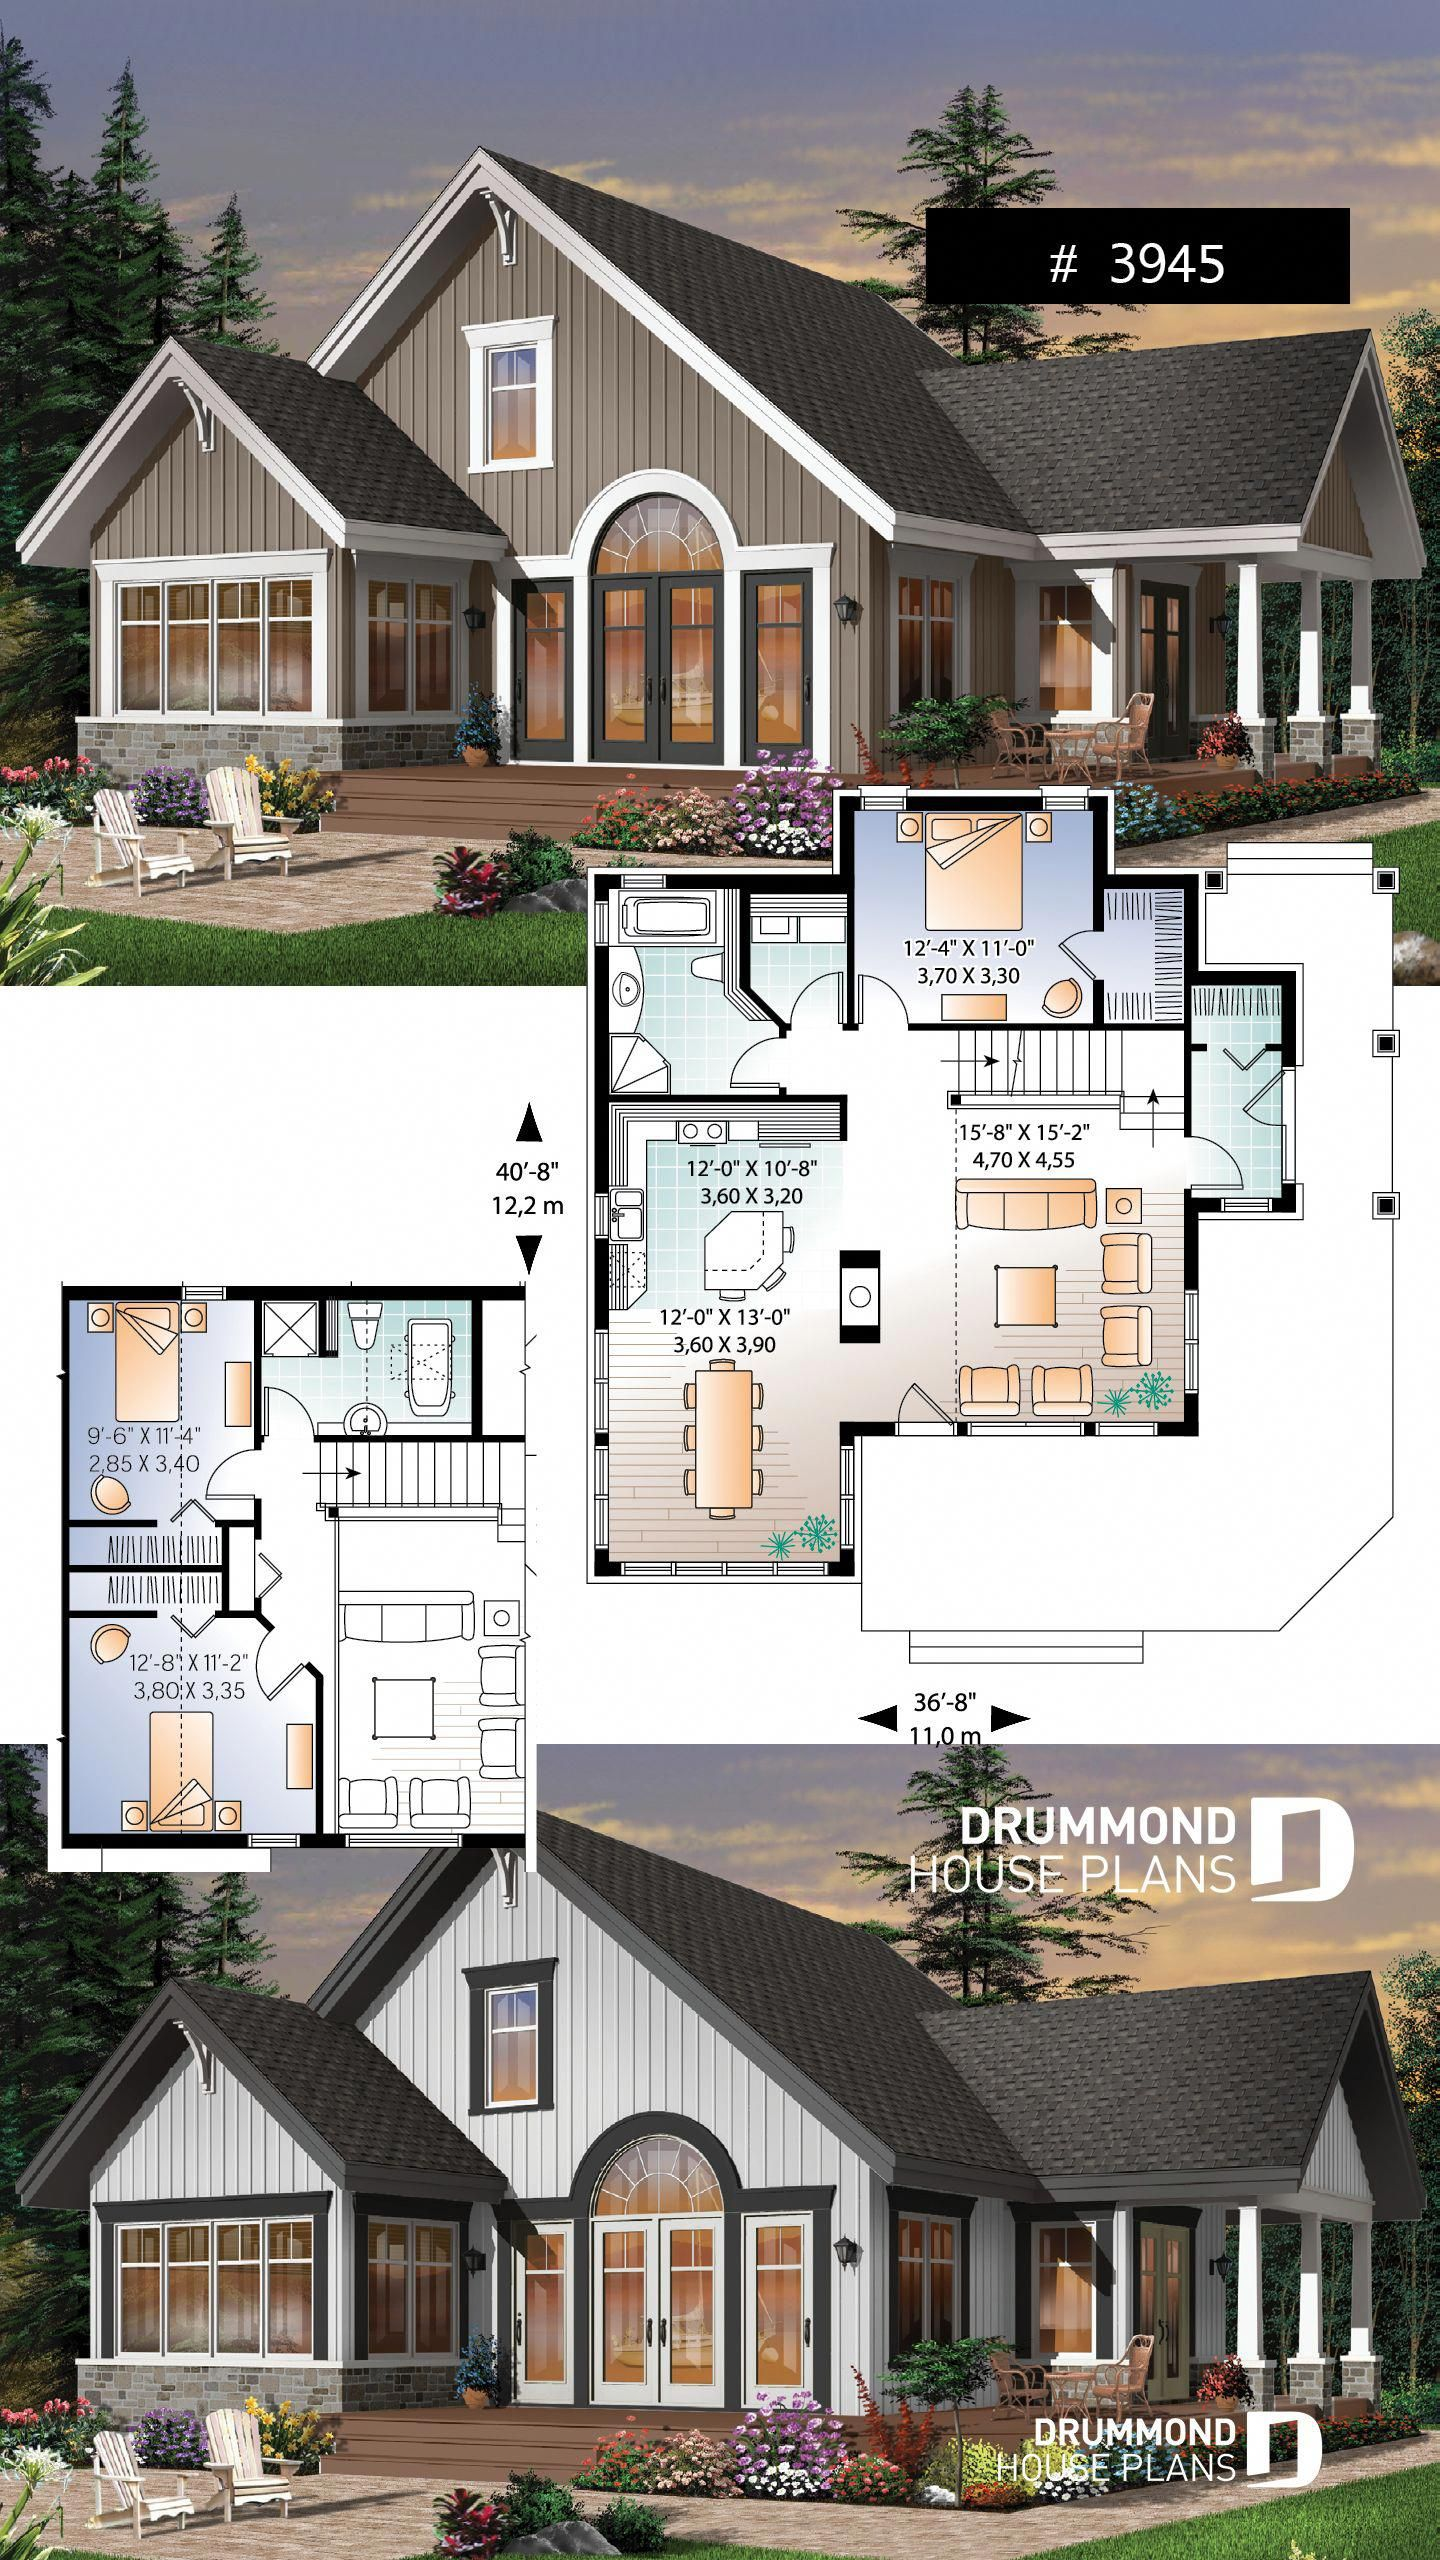 Look At These Fab Choices For White Countrycottagediydecor House Blueprints Sims House Plans House Plans